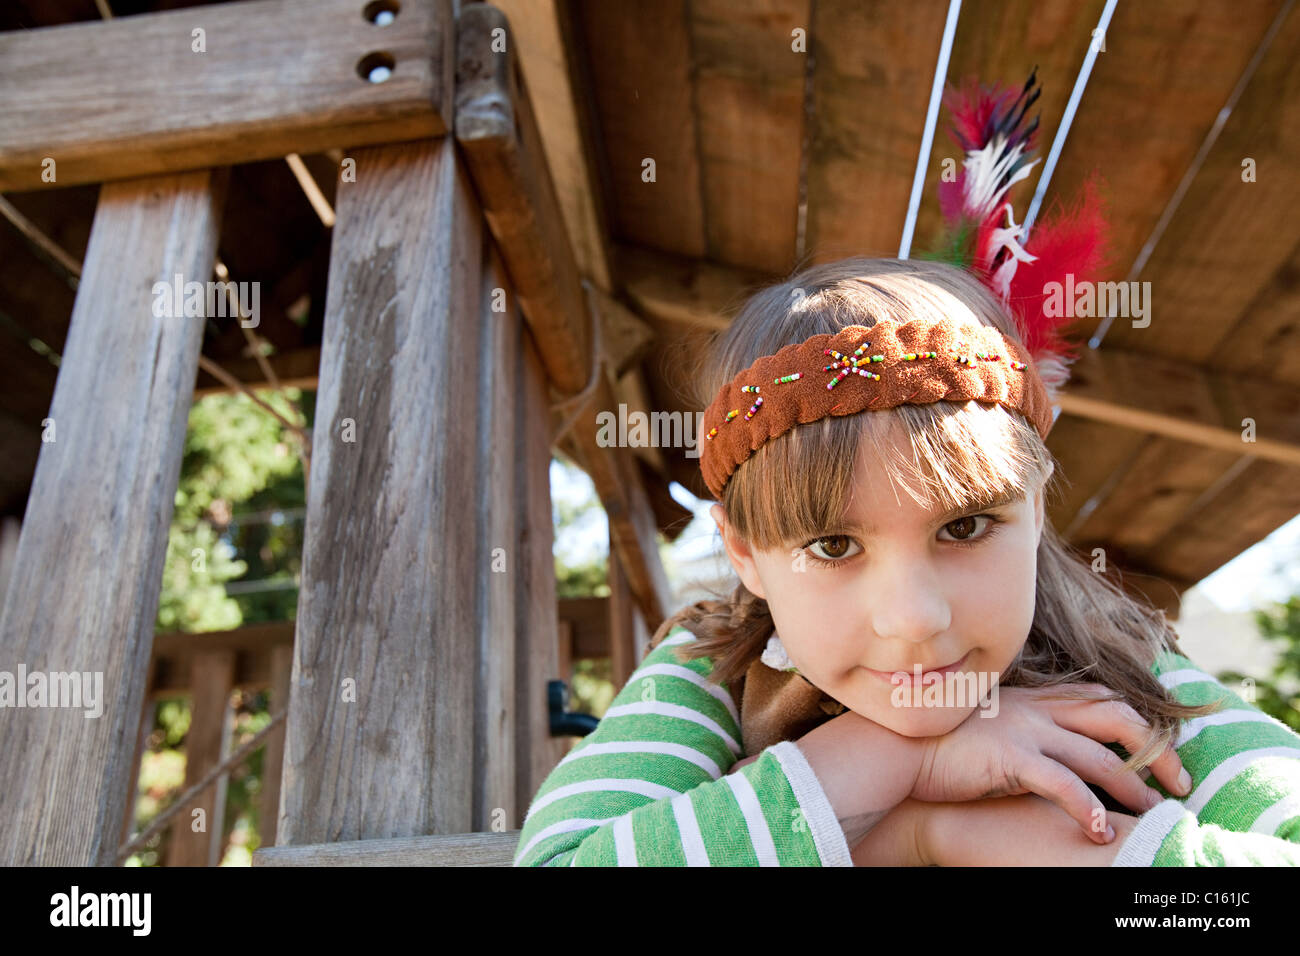 Girl in Native American costume - Stock Image